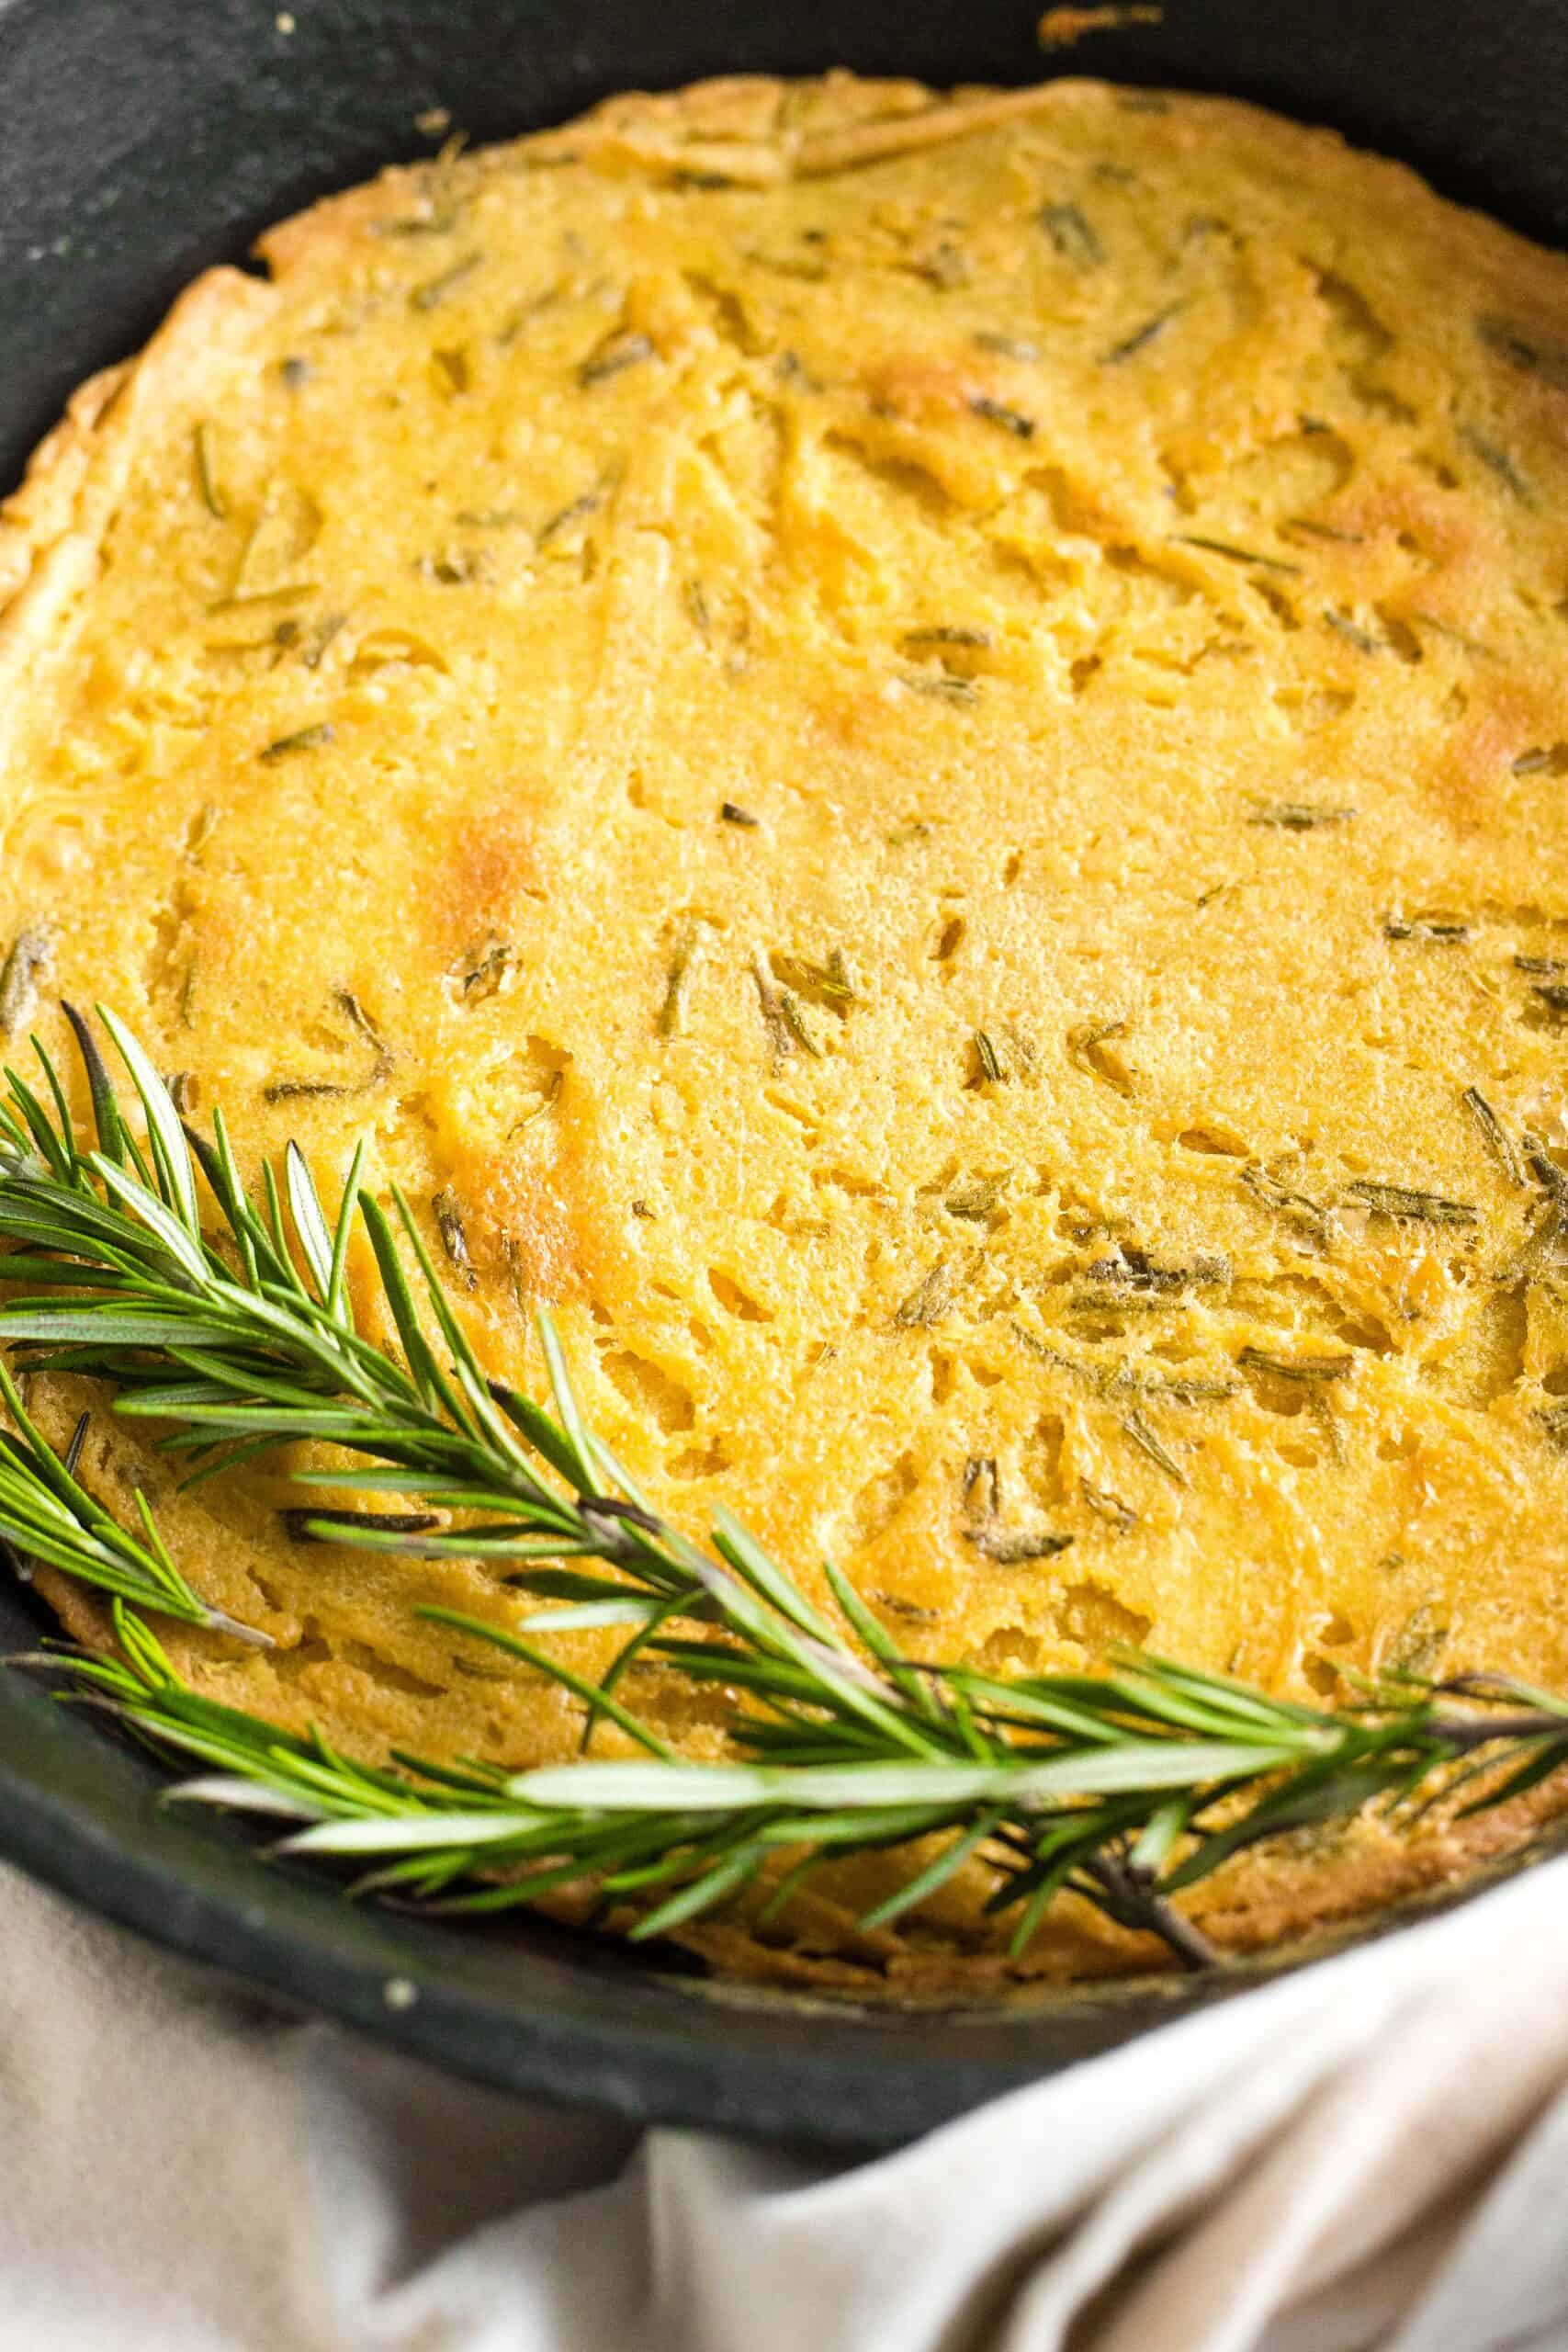 Fresh rosemary on top of a skillet of farinata.